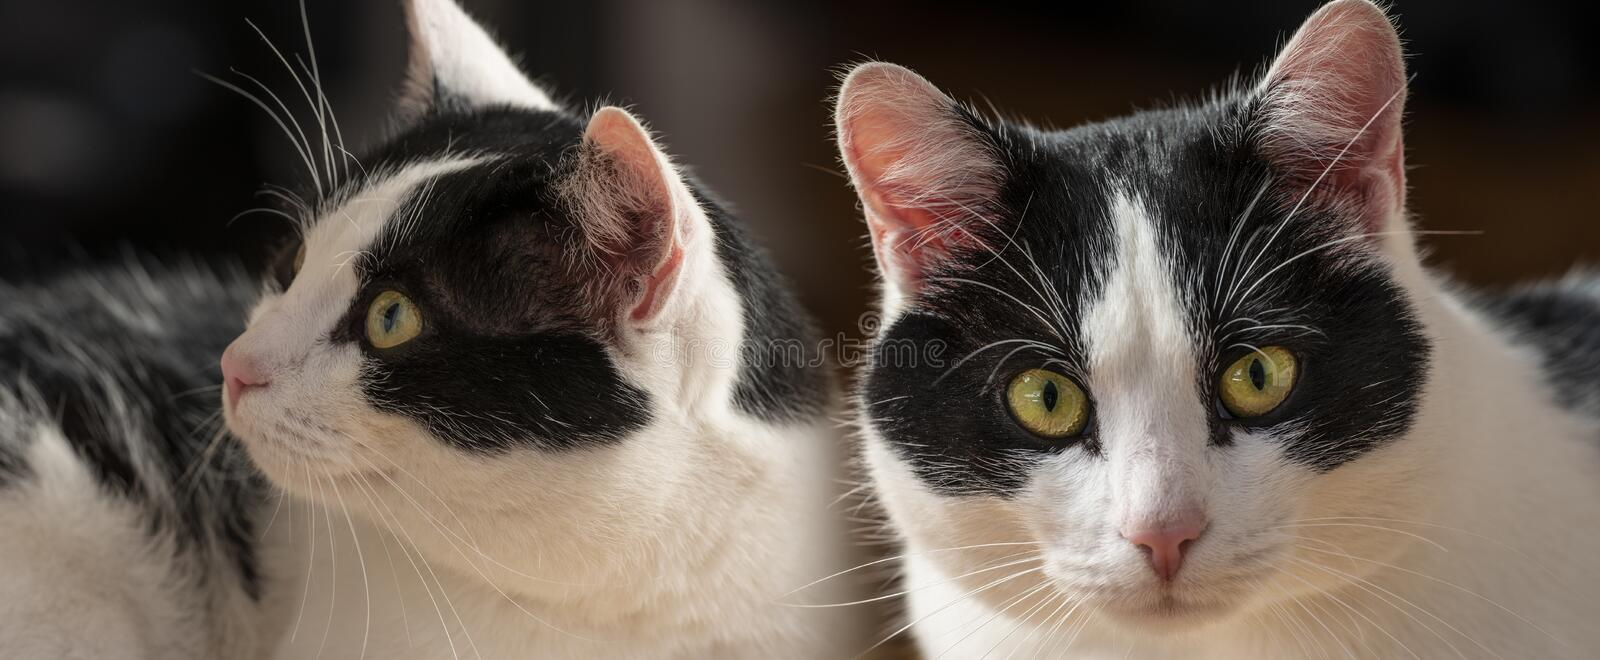 Cute cats portraits close up. In the detail royalty free stock images